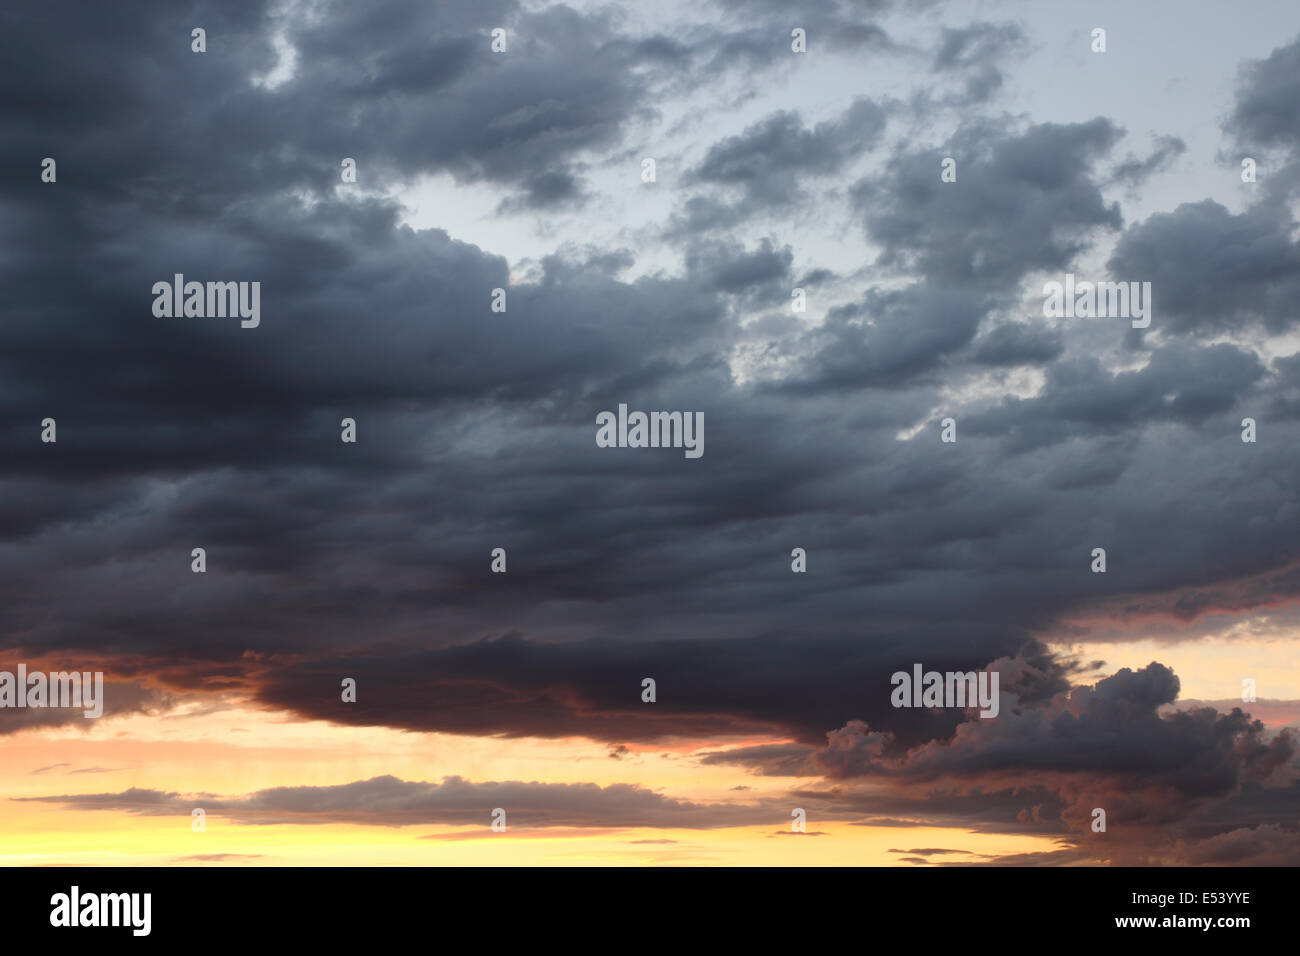 Sunset with dark clouds before the storm - Stock Image